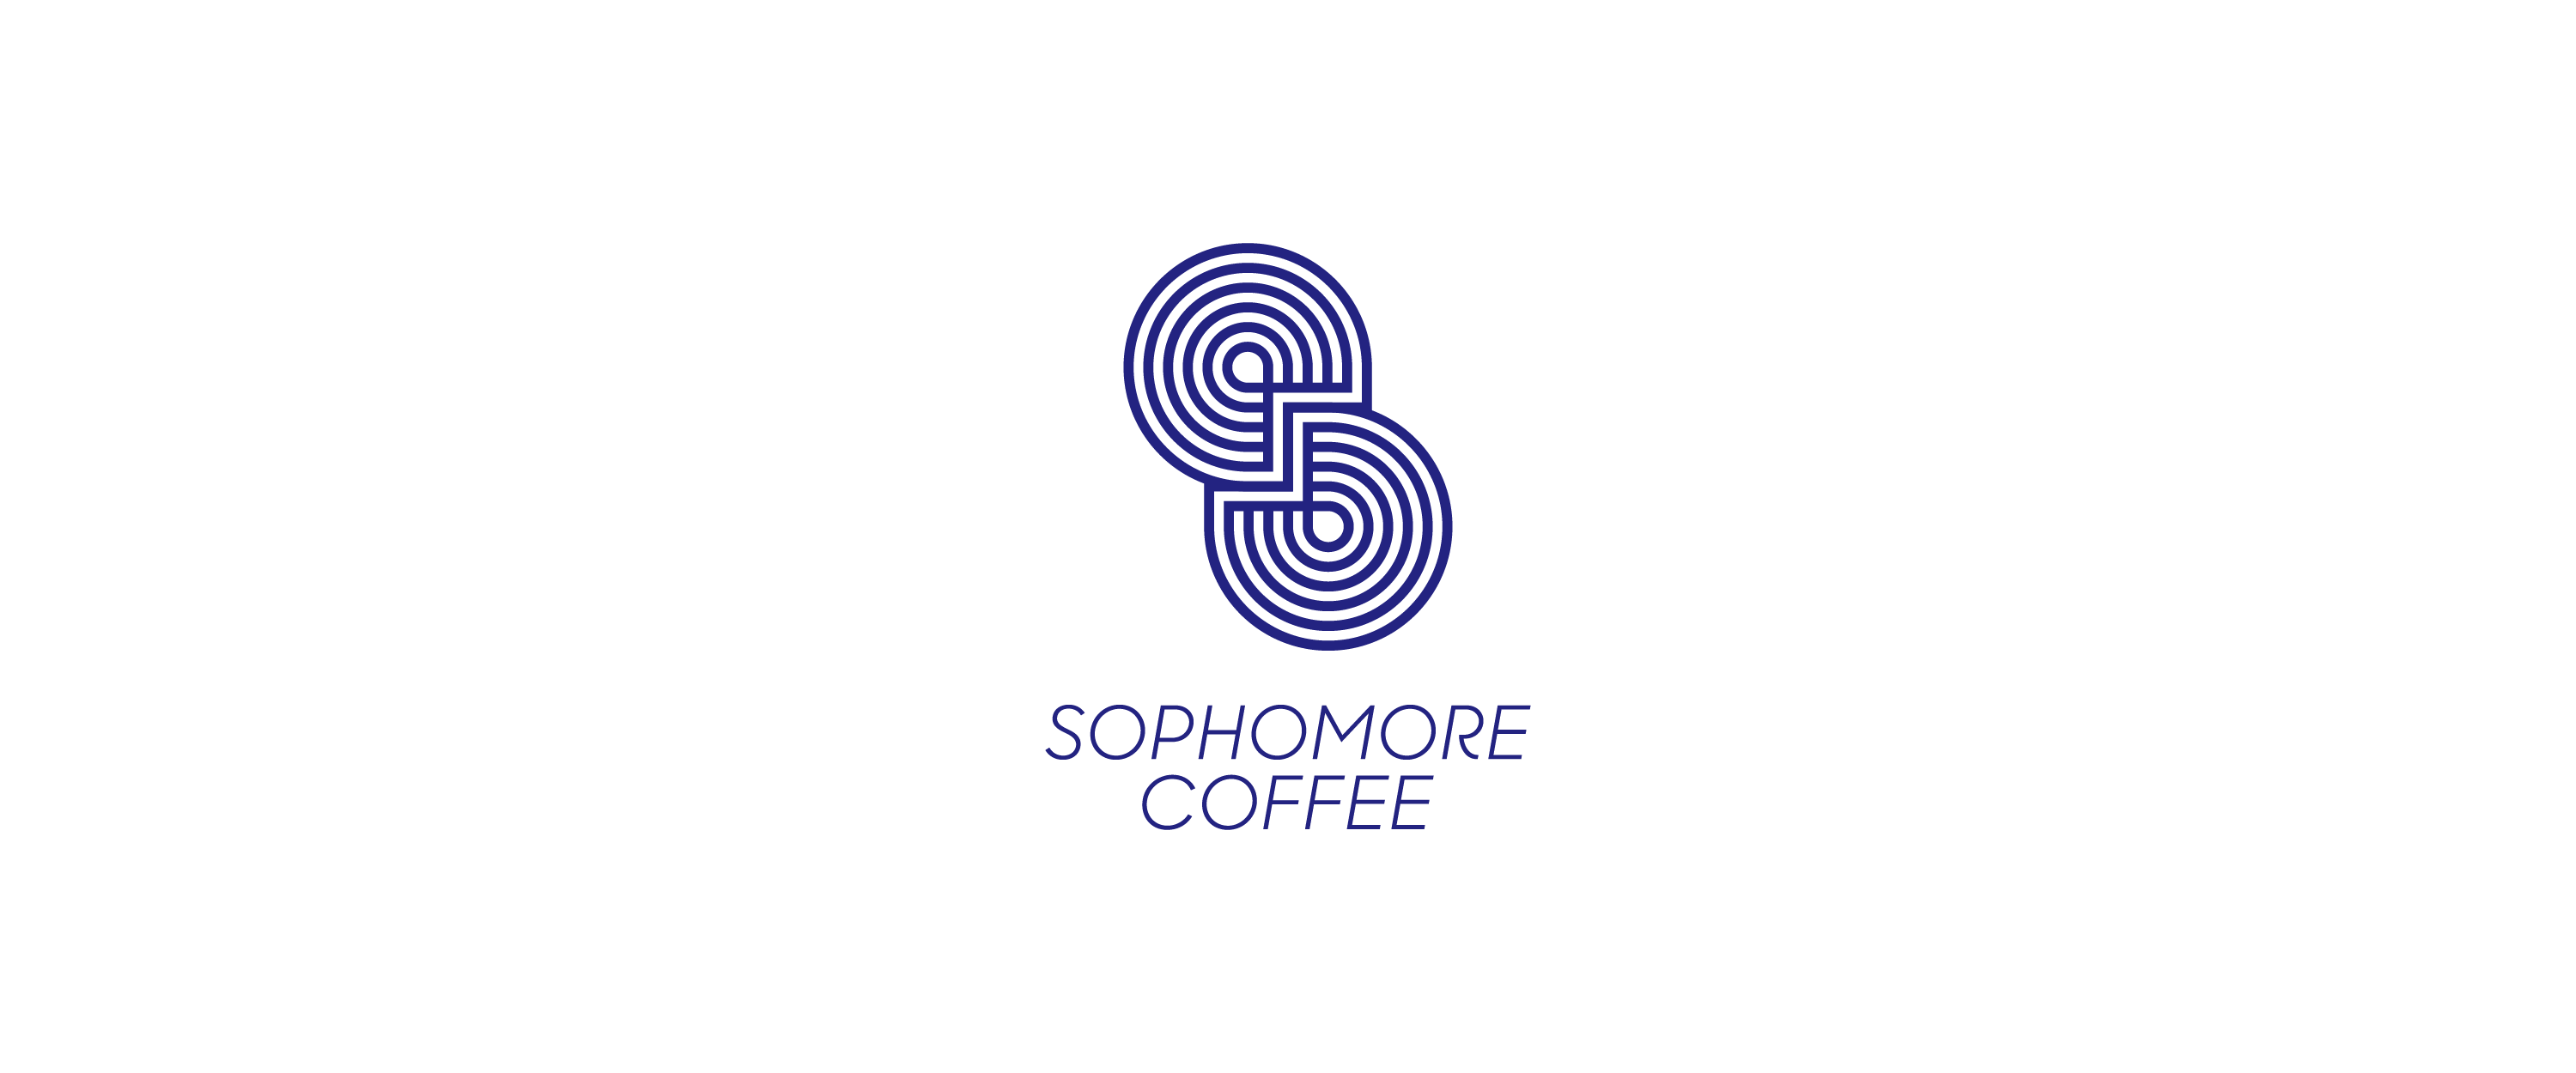 Sophomore_Project5-02